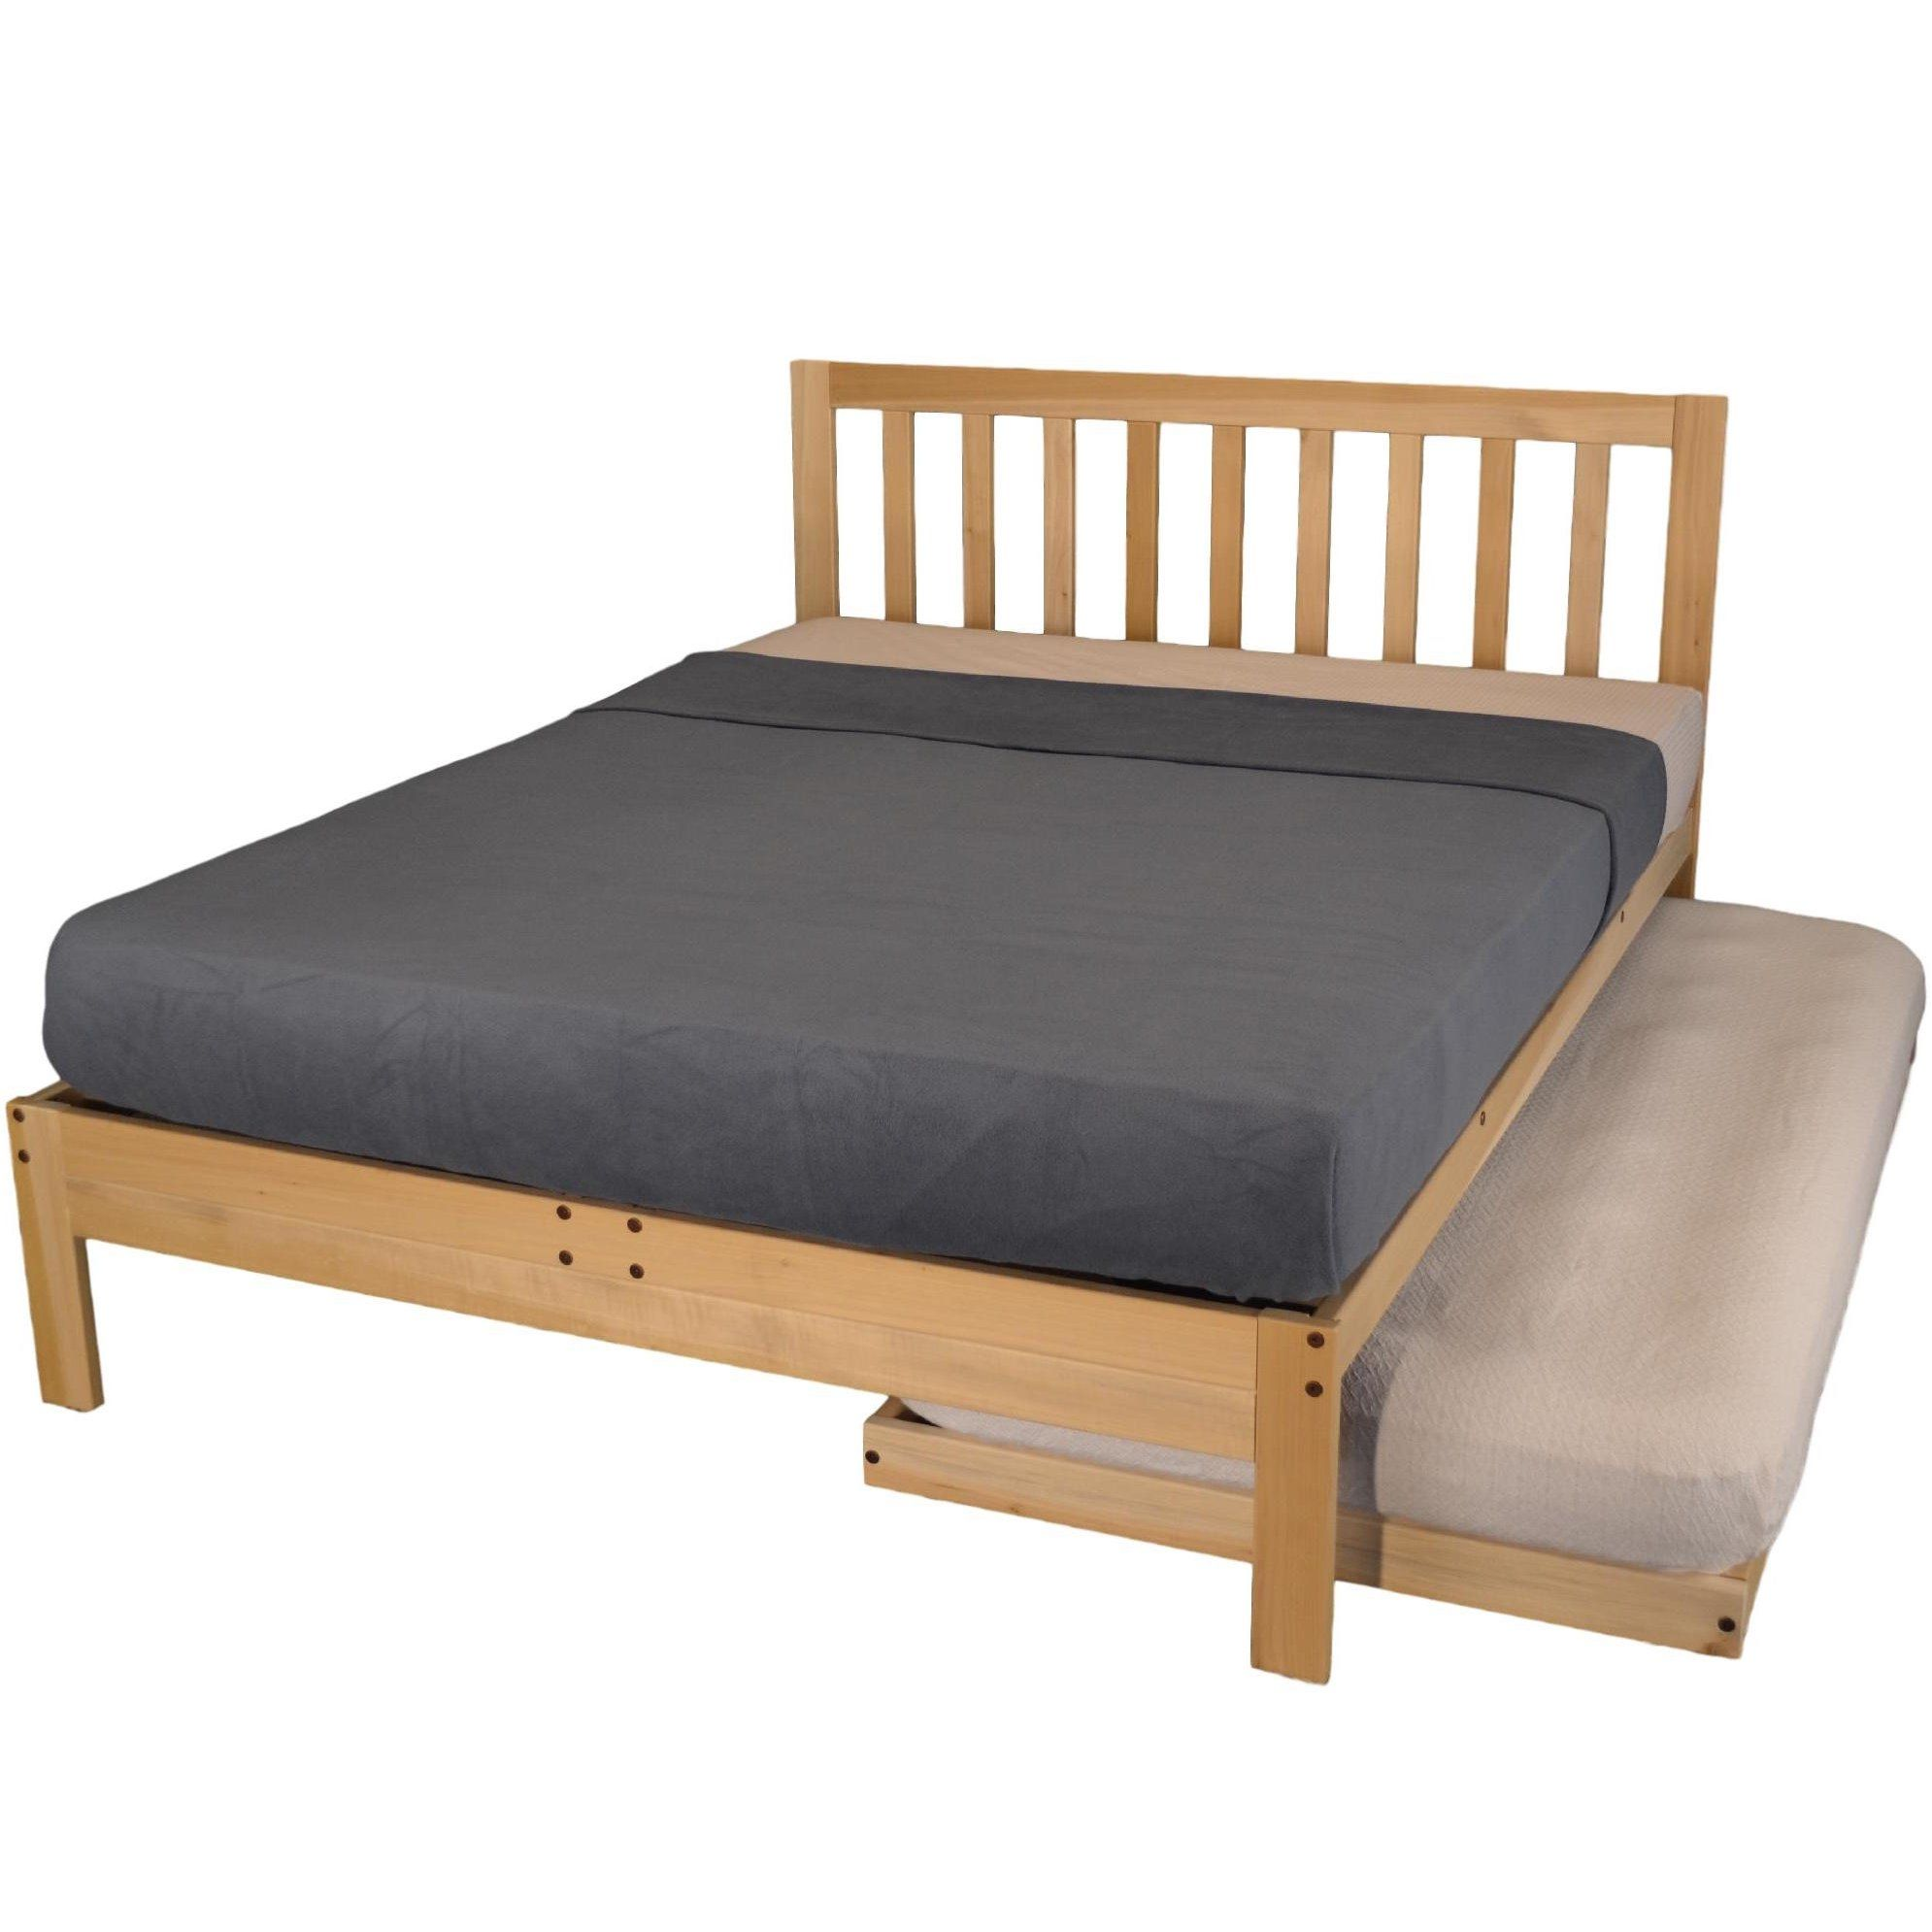 worth decor redoubtable platform your home wayfair bed bedroom reviews modloft throughout upholstered